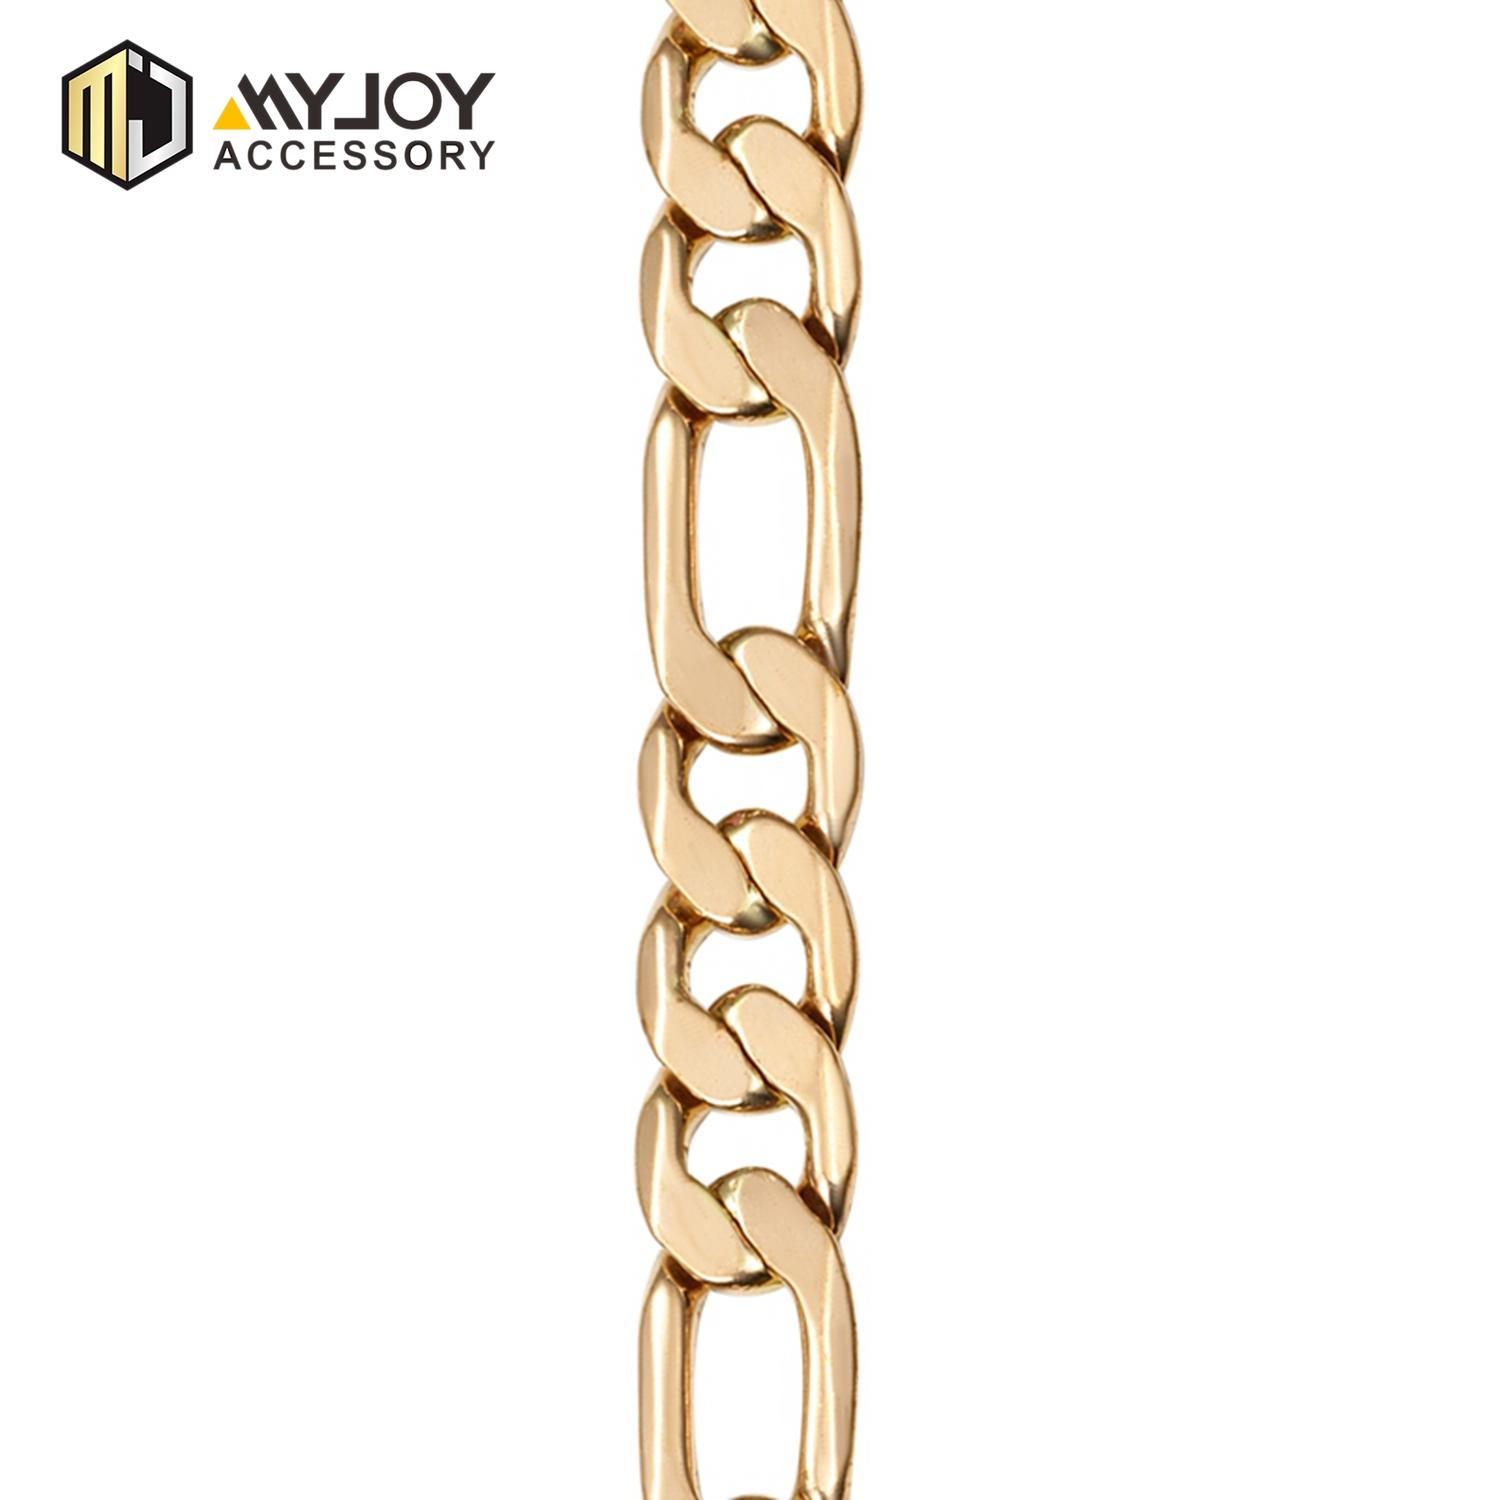 MYJOY cm handbag chain strap Supply for handbag-2